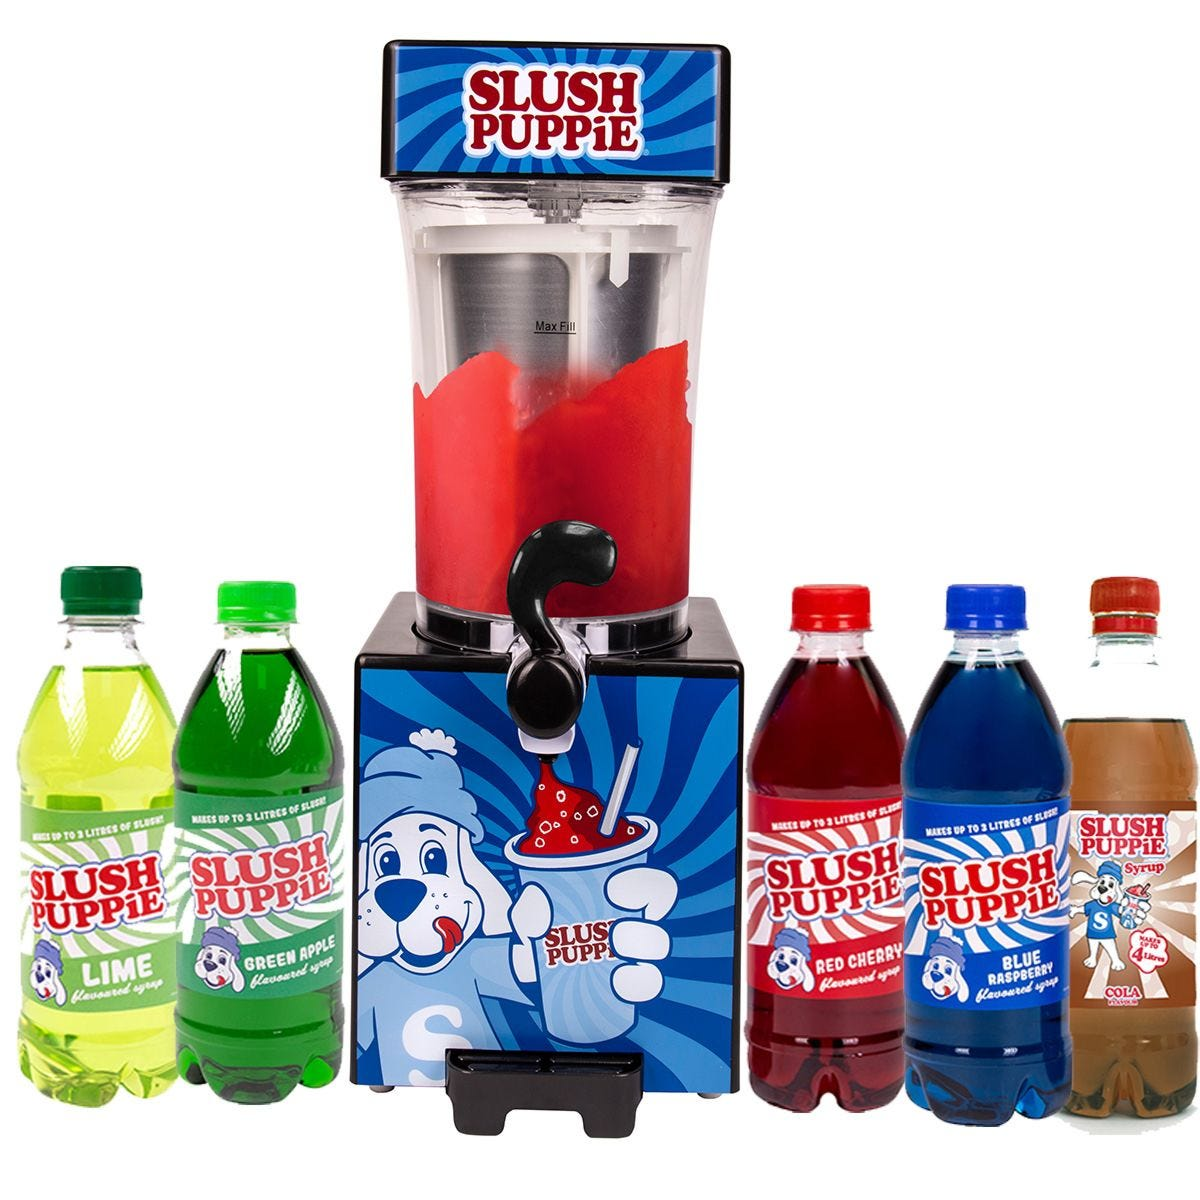 Slush Puppie with Five Syrups - Blue Raspberry, Green Apple, Cola, Lime and Cherry